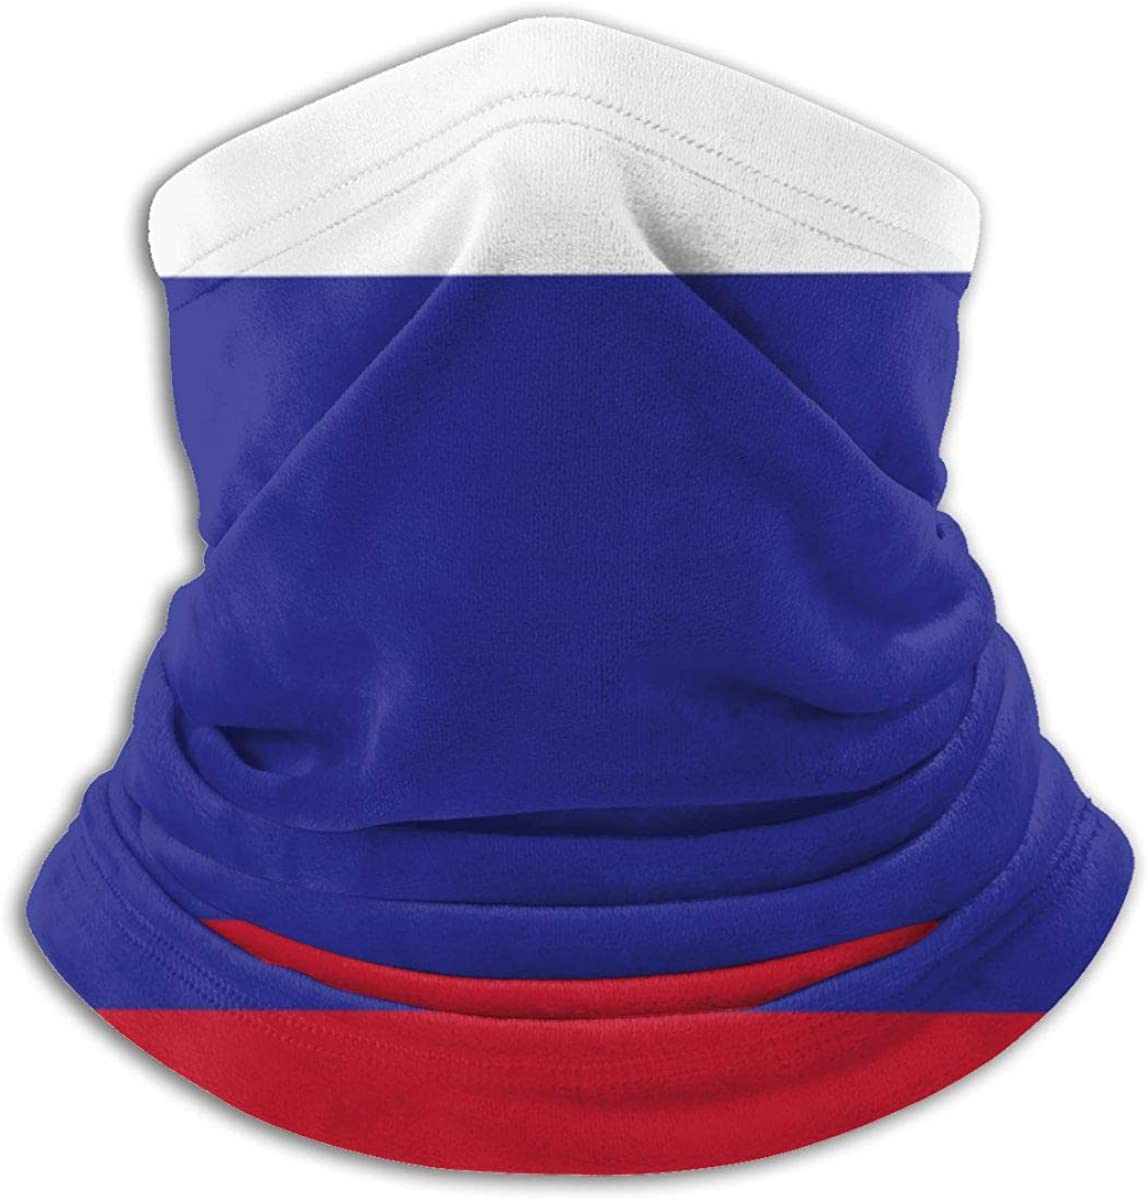 Seamless Neck Gaiter Shield Scarf Bandana Face Seamless UV Protection for Motorcycle Cycling Riding Running Headbands